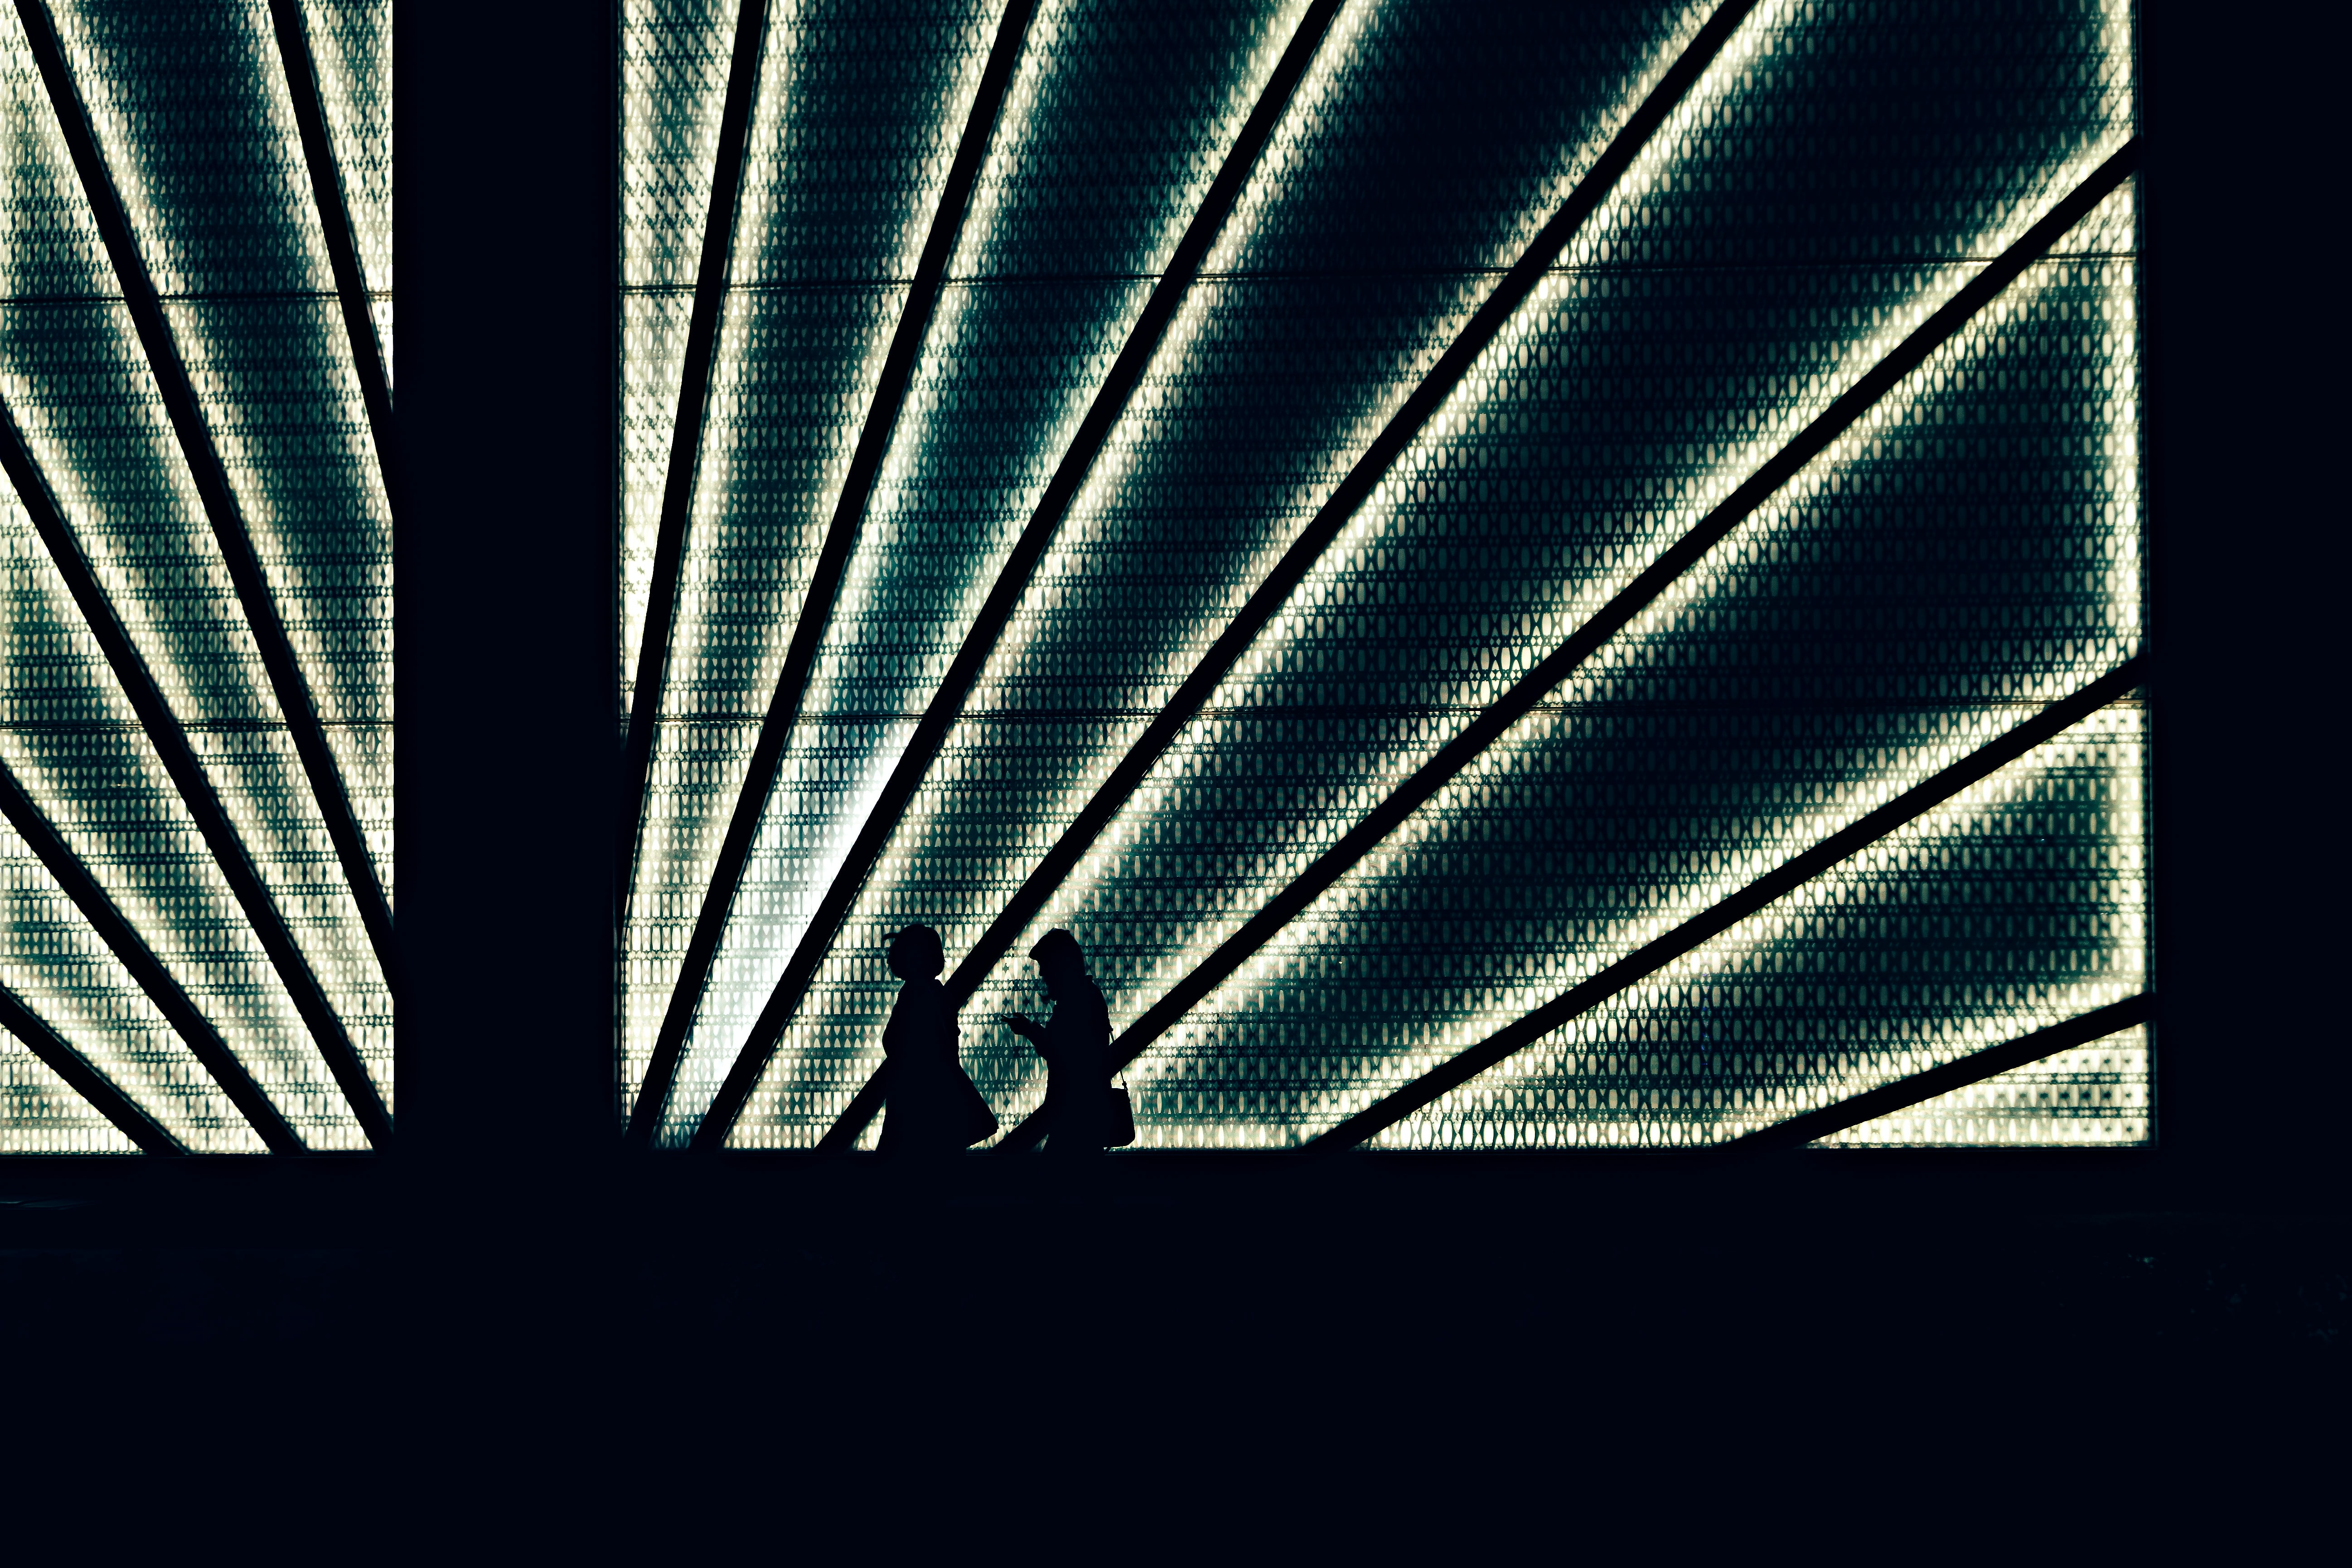 silhouette of two person walking